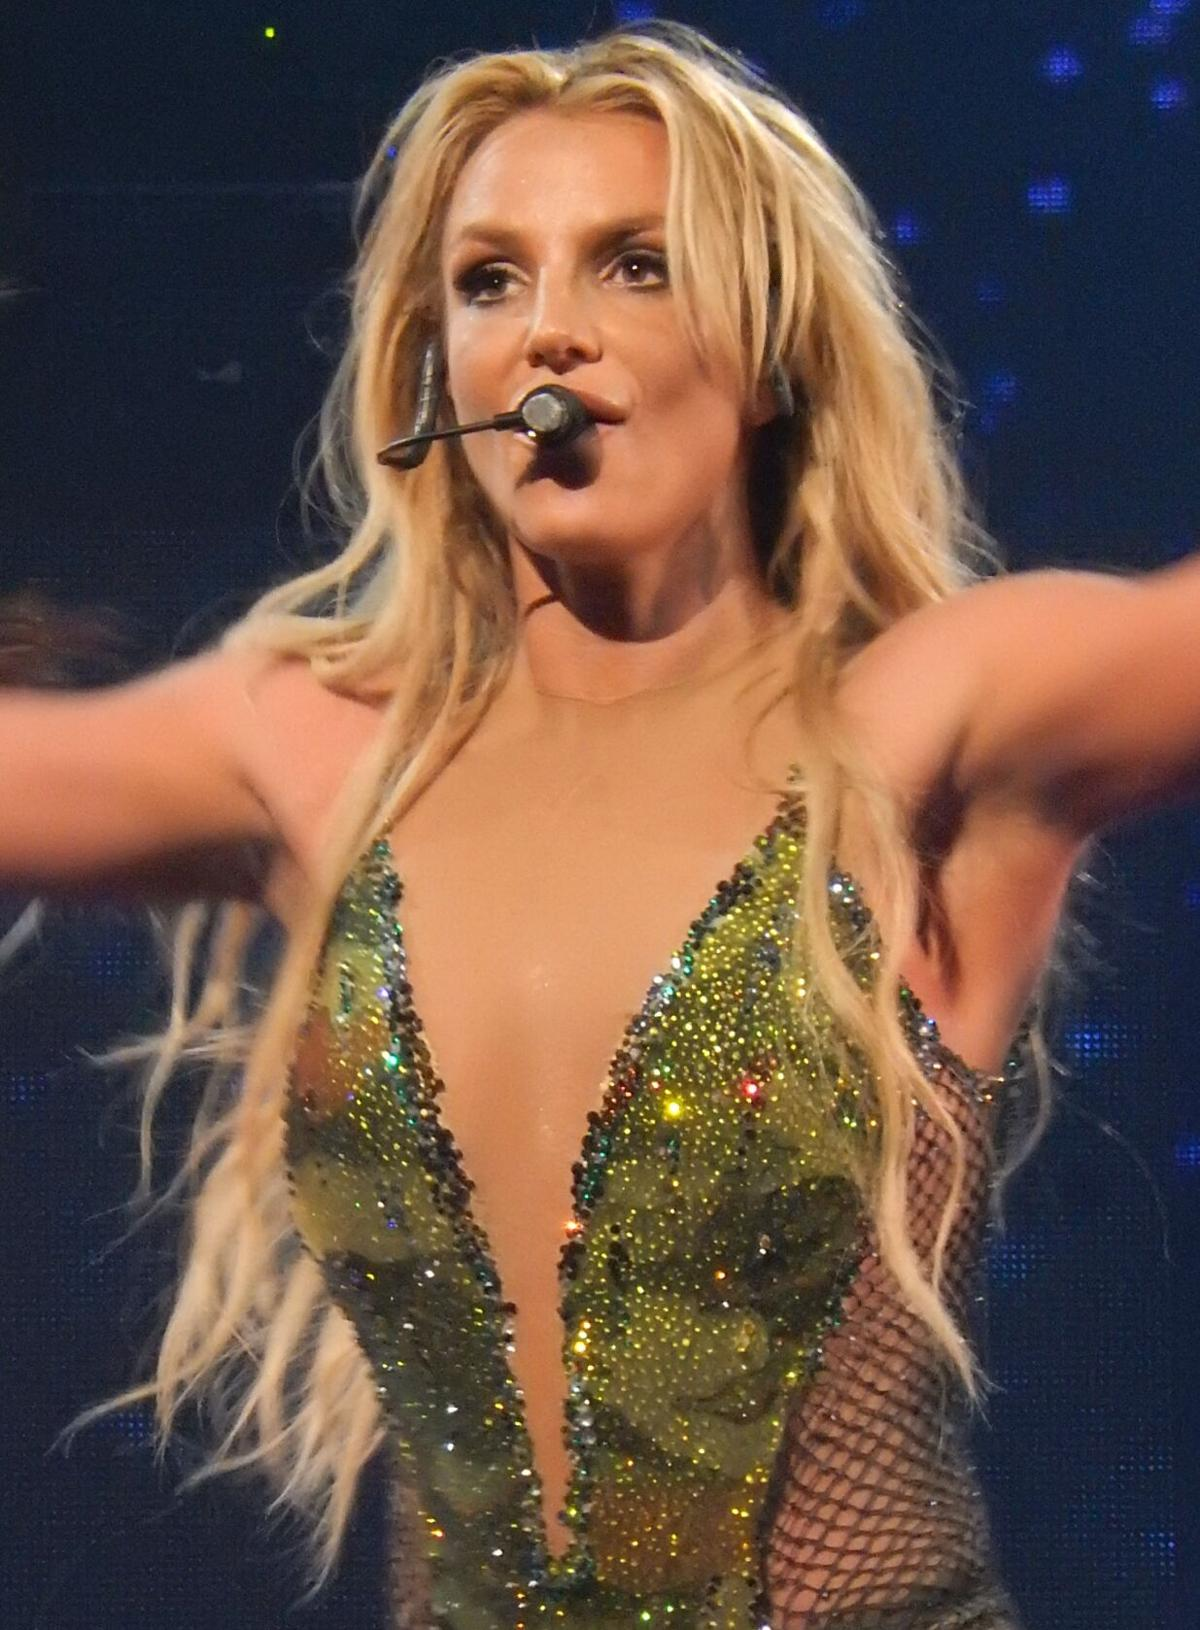 Opinion: Britney Spears should be released from her conservatorship